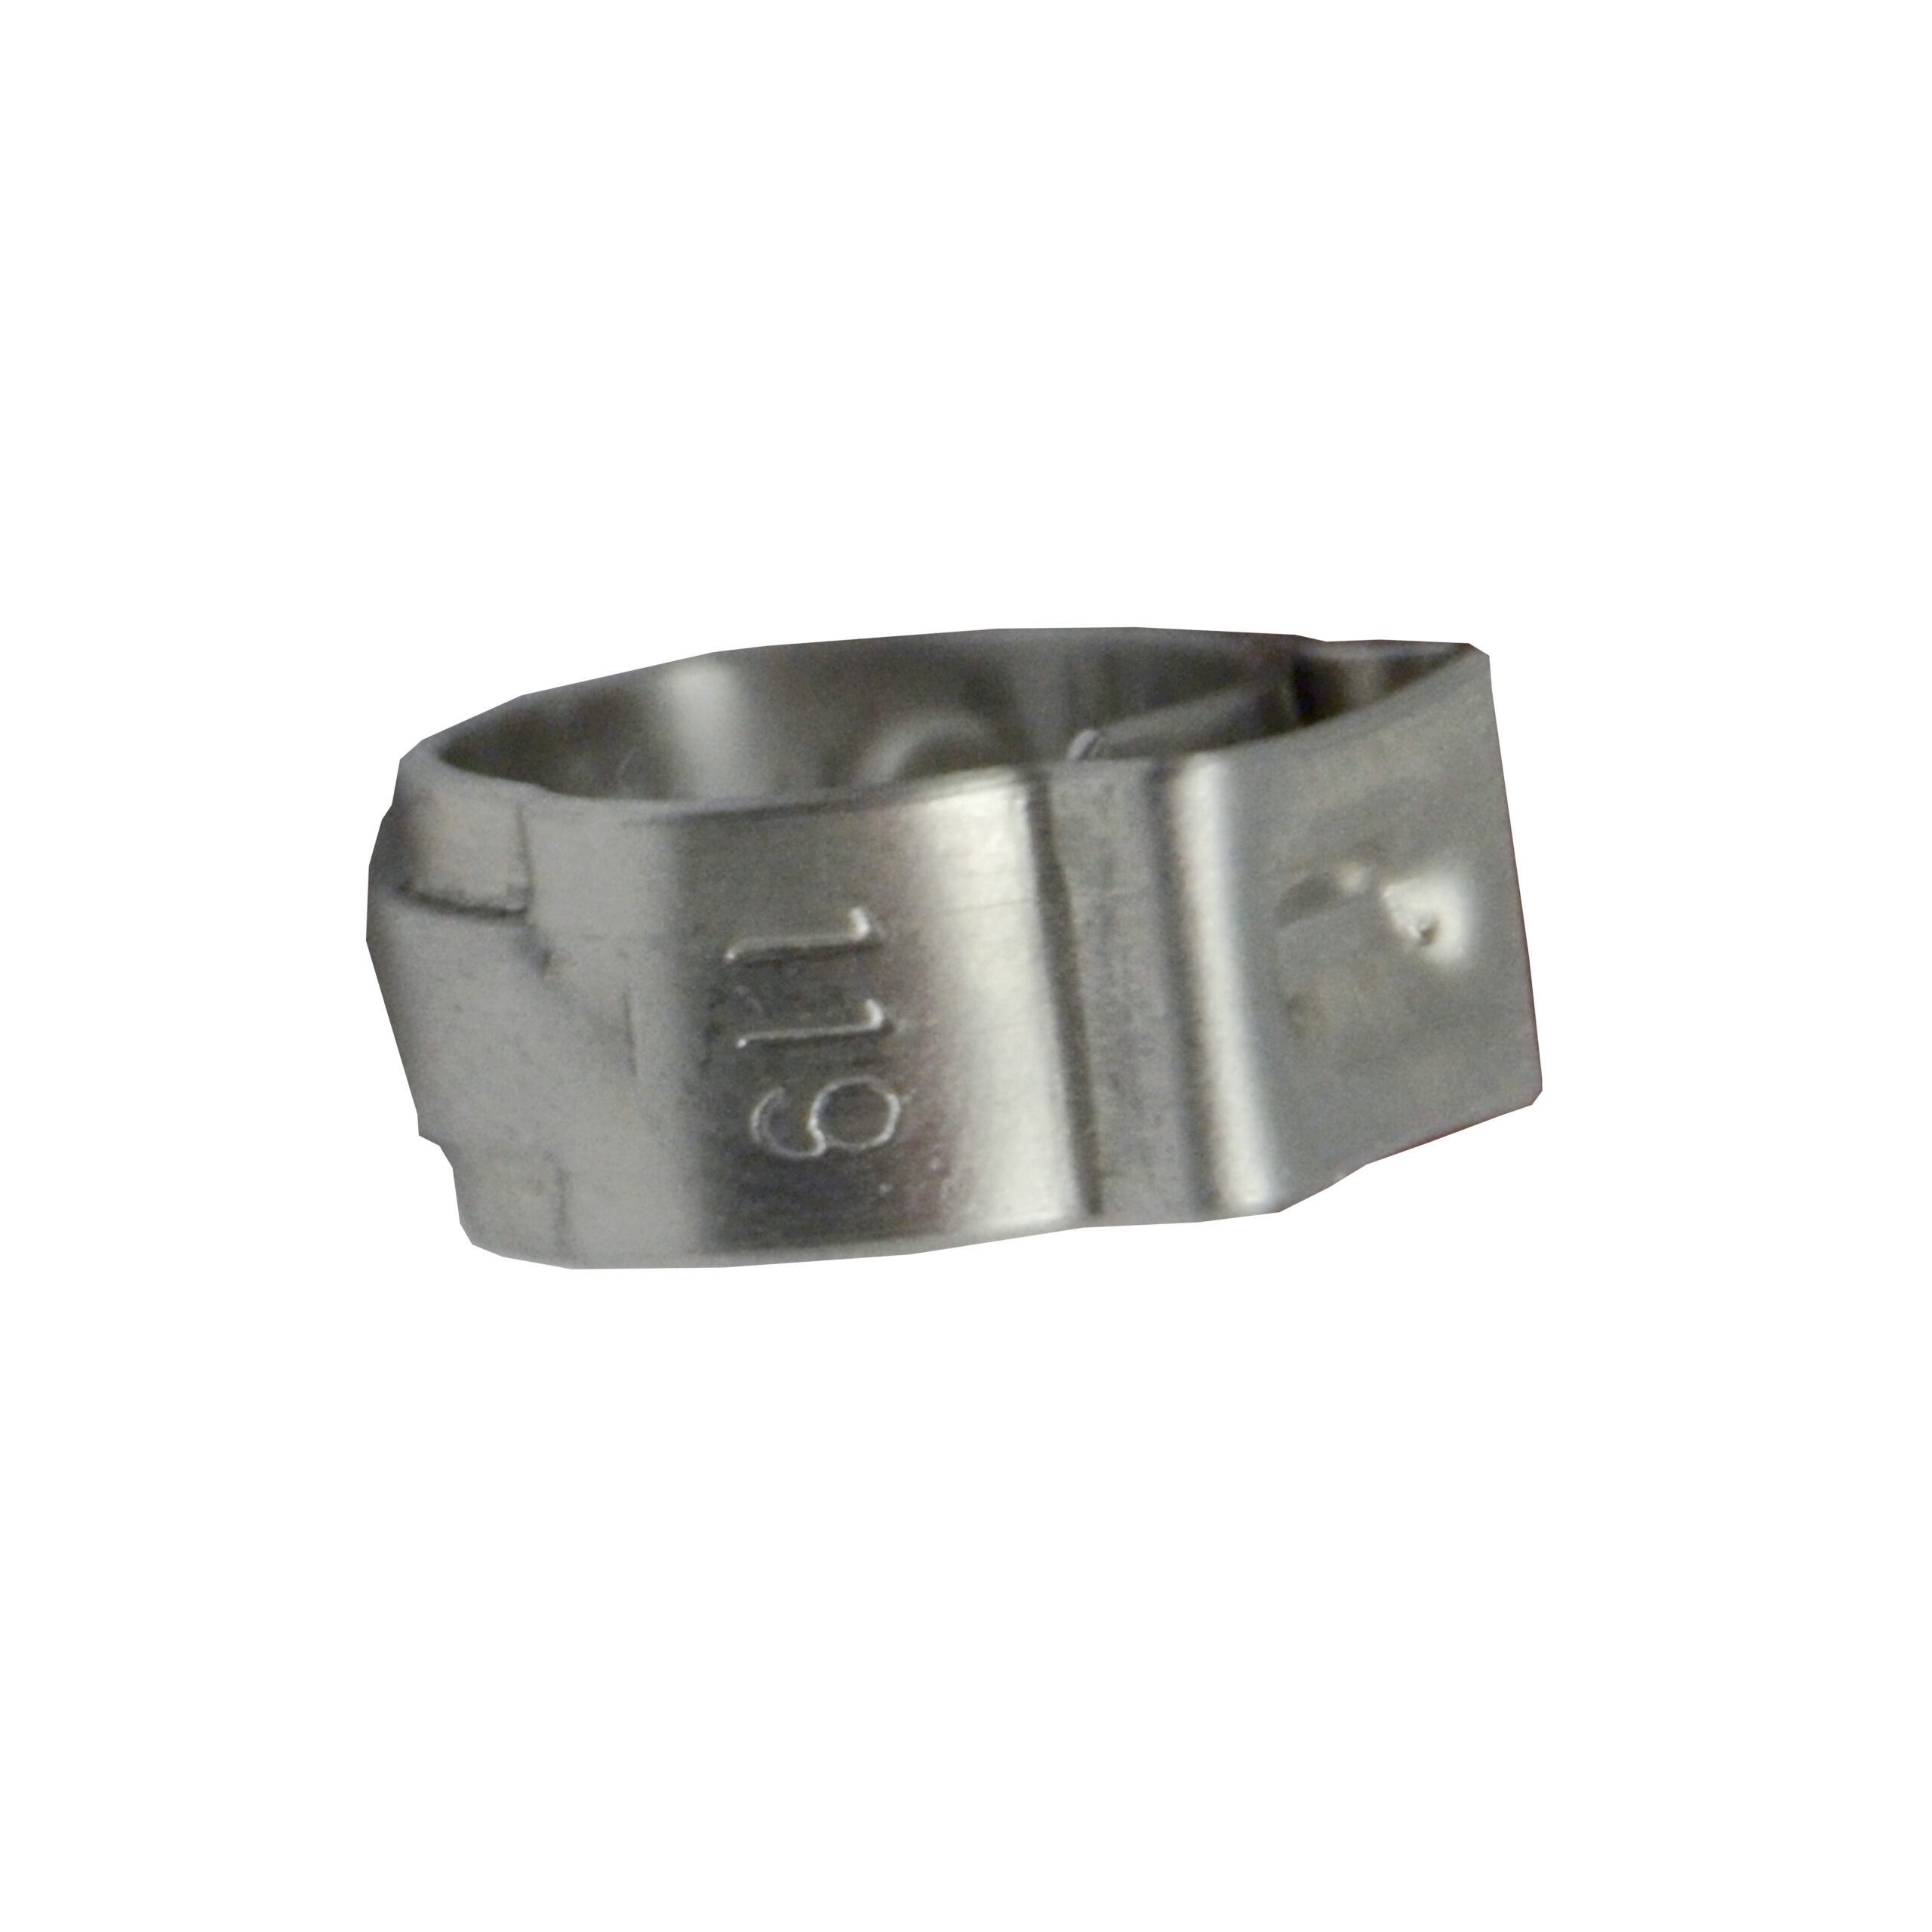 C020 KROME Stainless Steel Step Less Clamp -